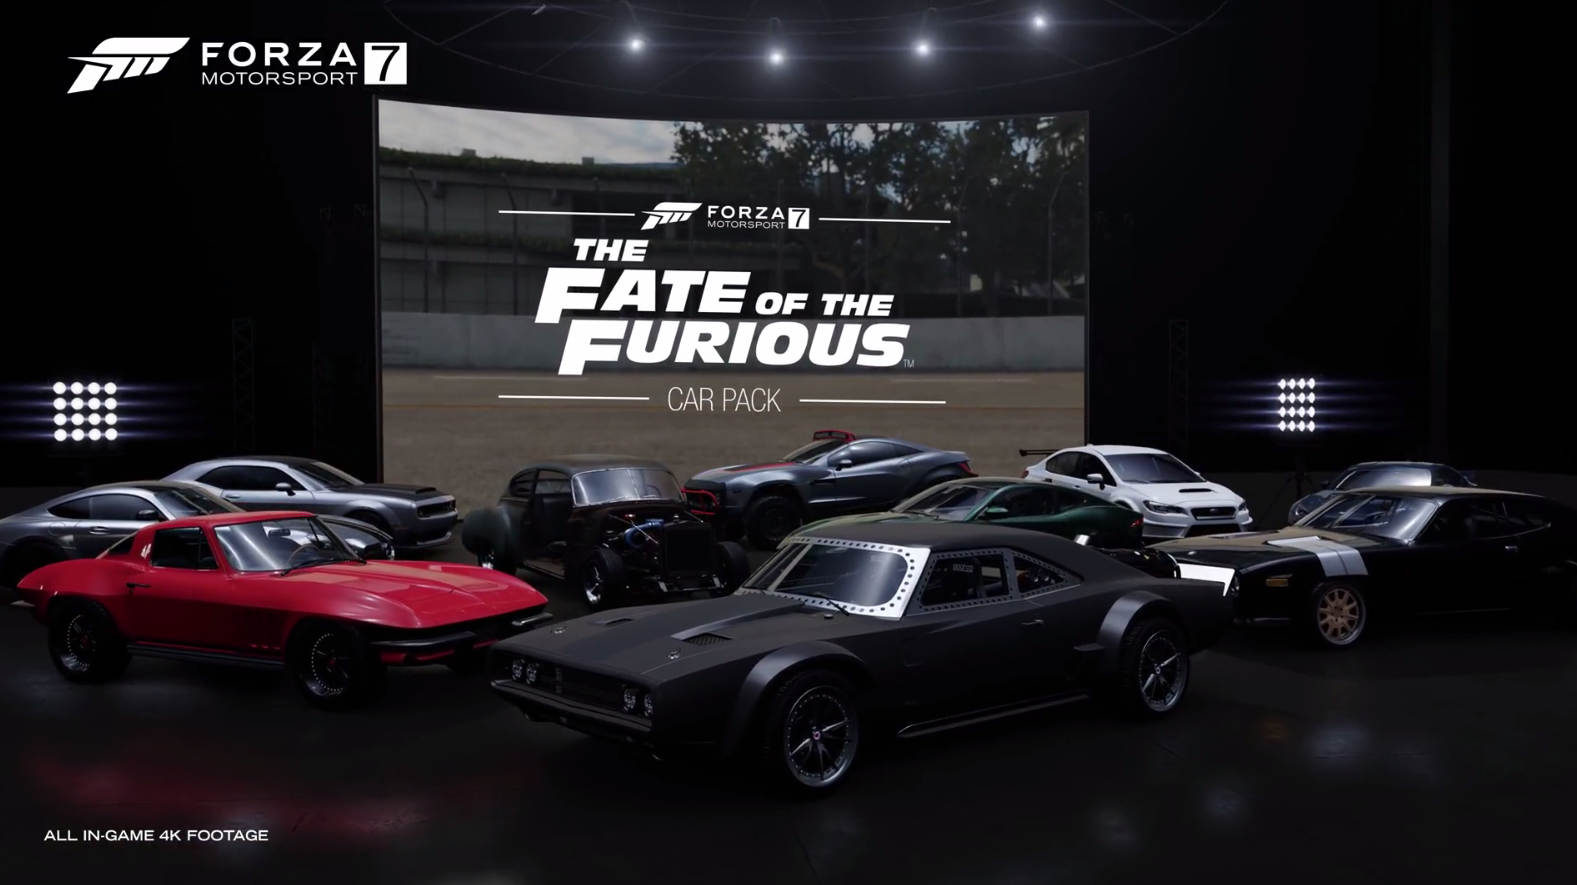 forza motorsport 7 fate of the furious car pack trailer onlineracedriver. Black Bedroom Furniture Sets. Home Design Ideas